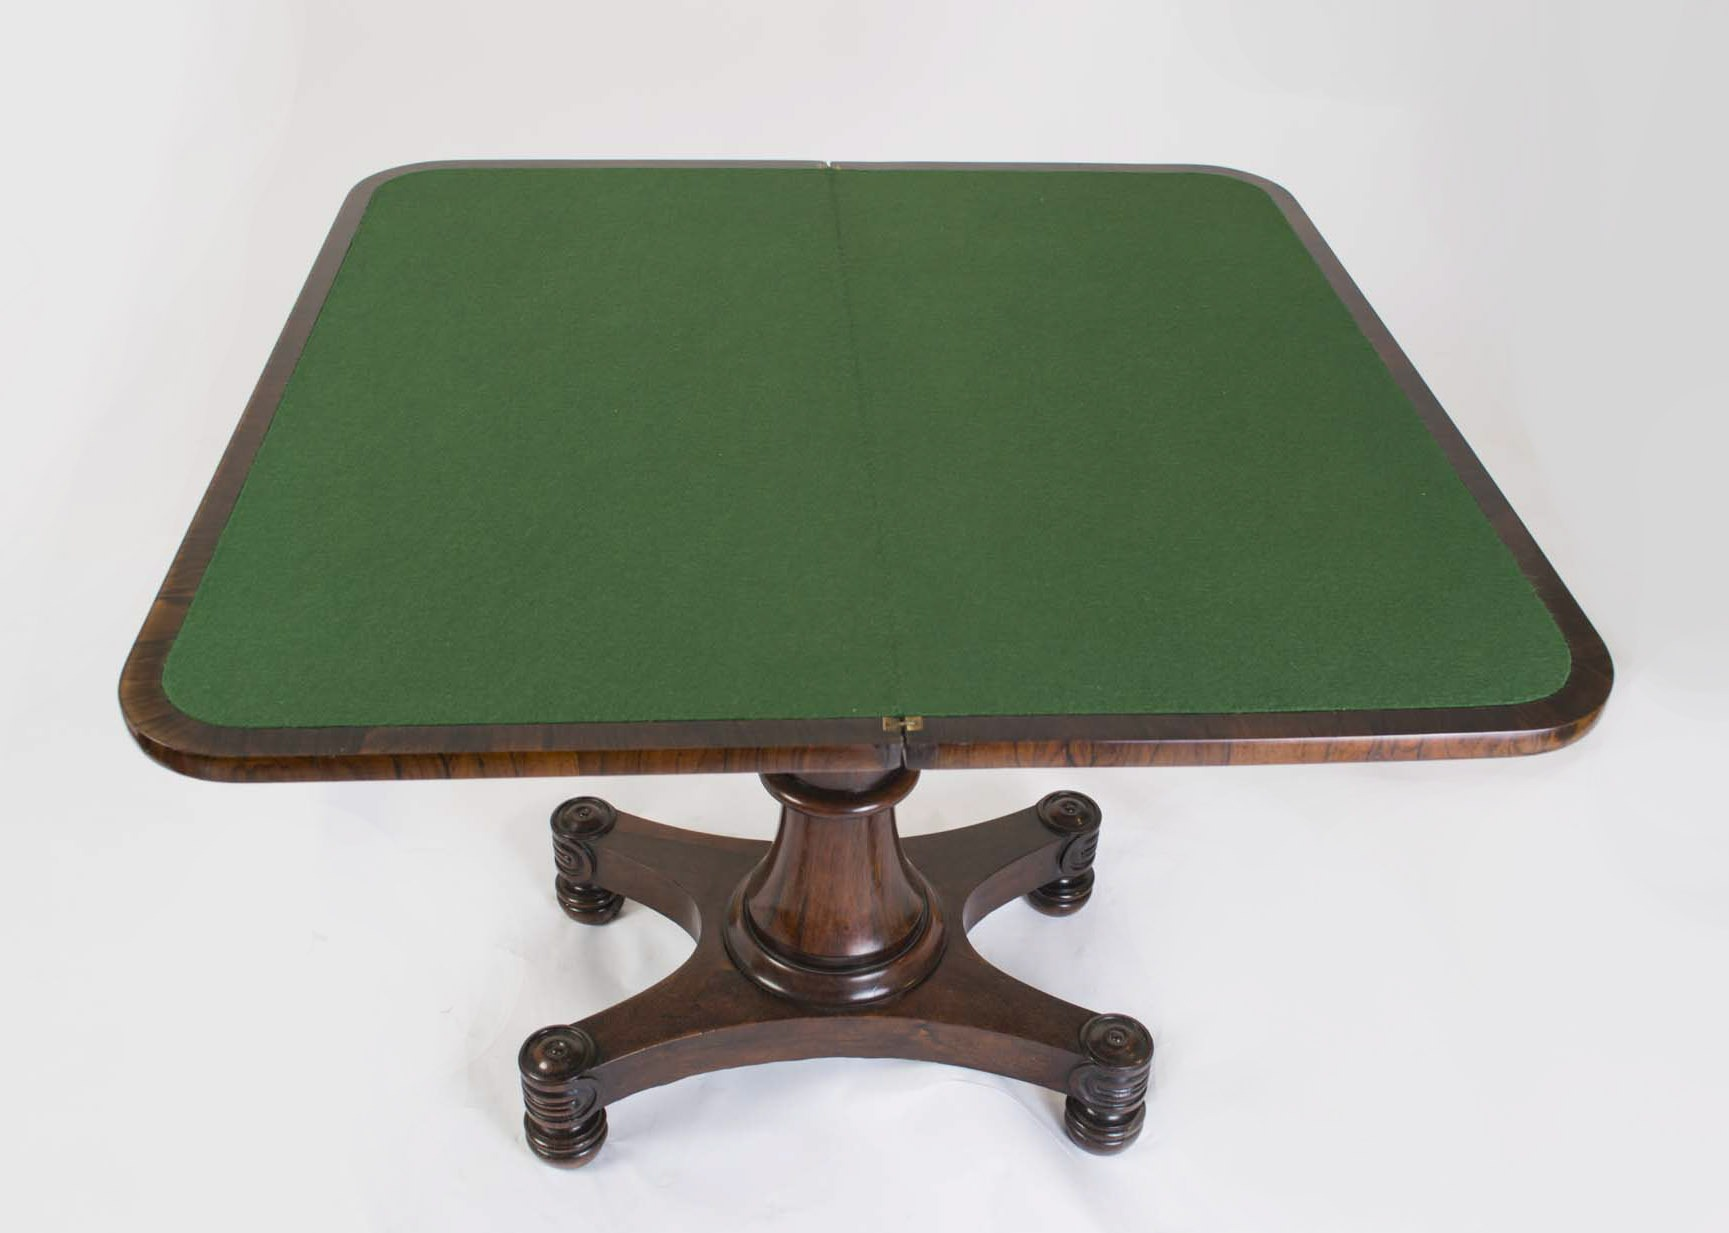 Identifying Antique Dining Table Styles and Types